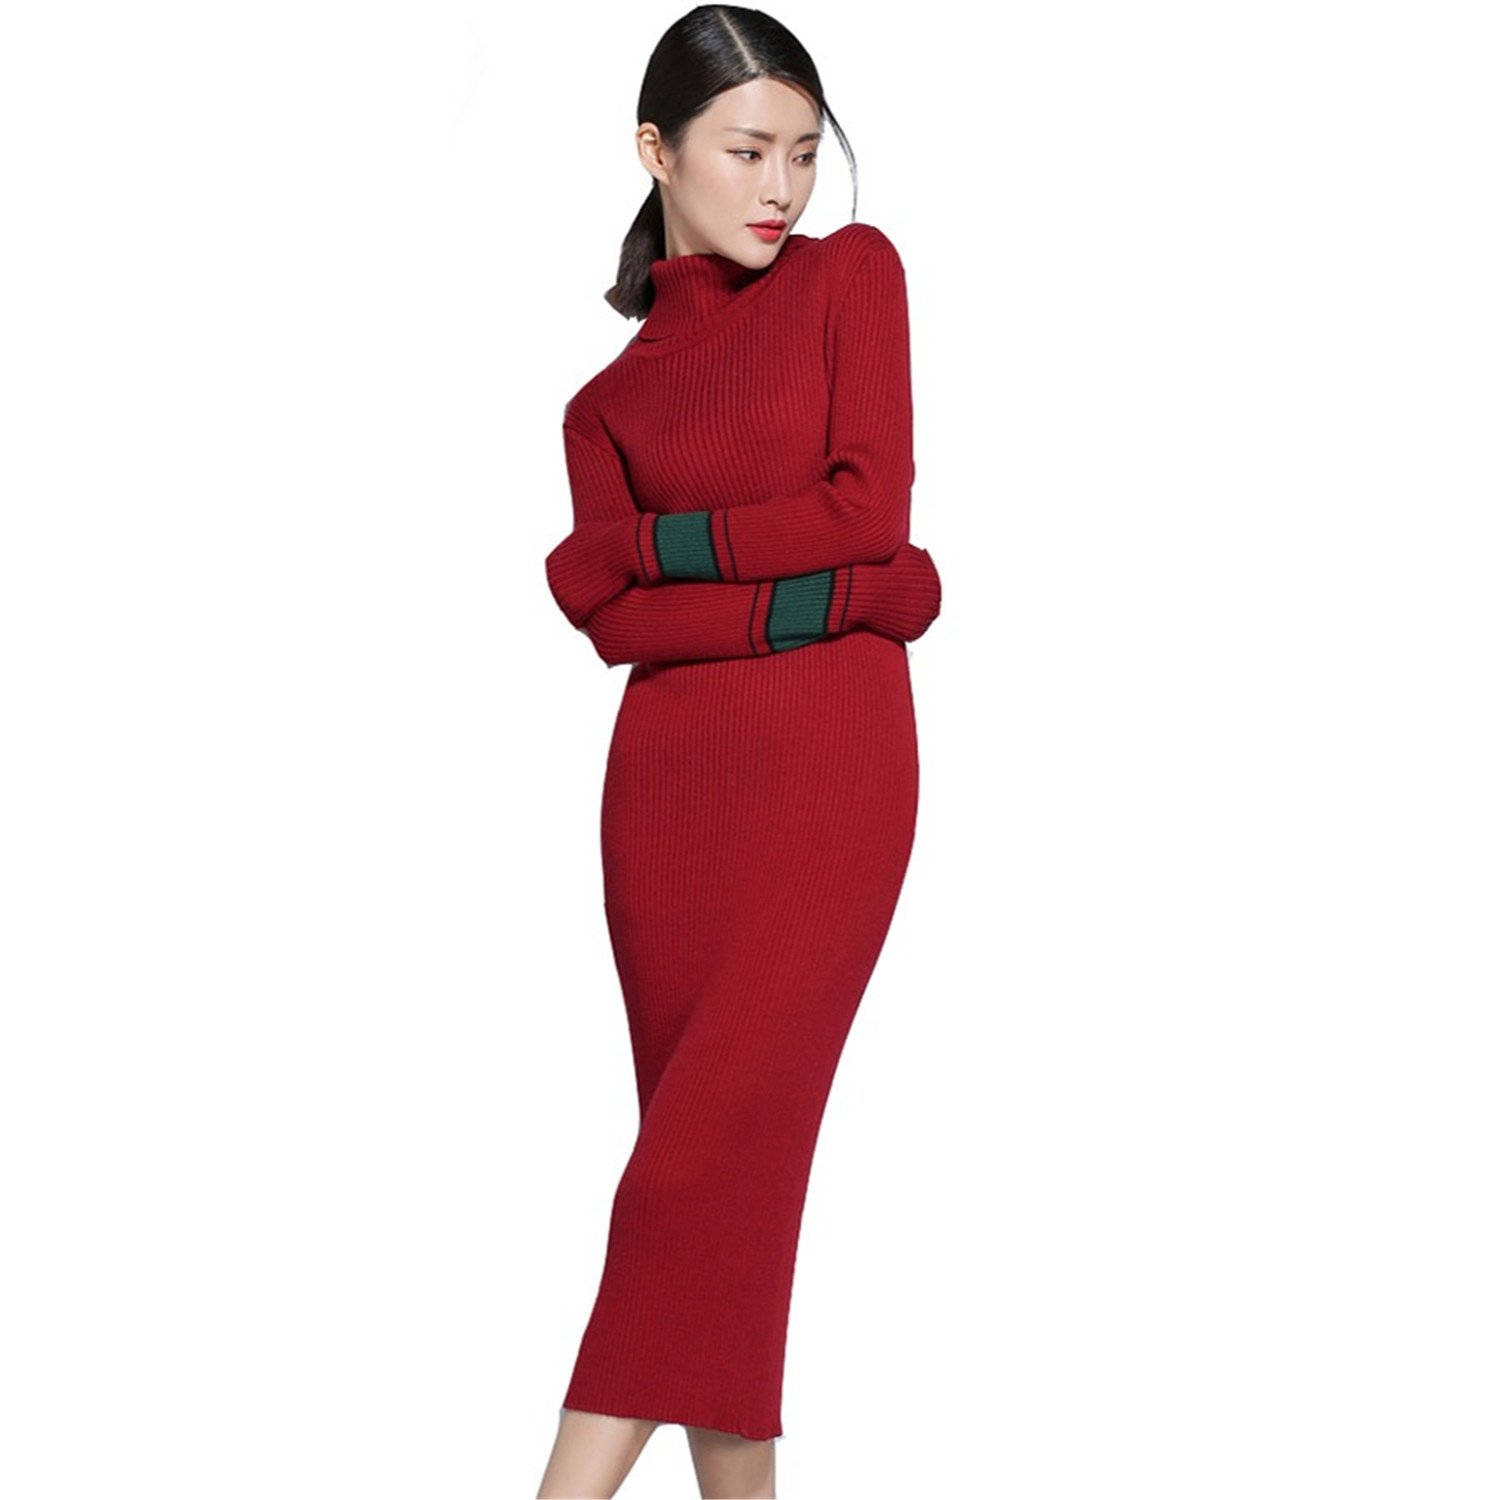 gome-z Autumn Winter Dress Cashmere Blending Turtleneck Strips Contrast Color Casual Long Slim Soft Femme Dresses Vestidos Army Green One Size at Amazon ...